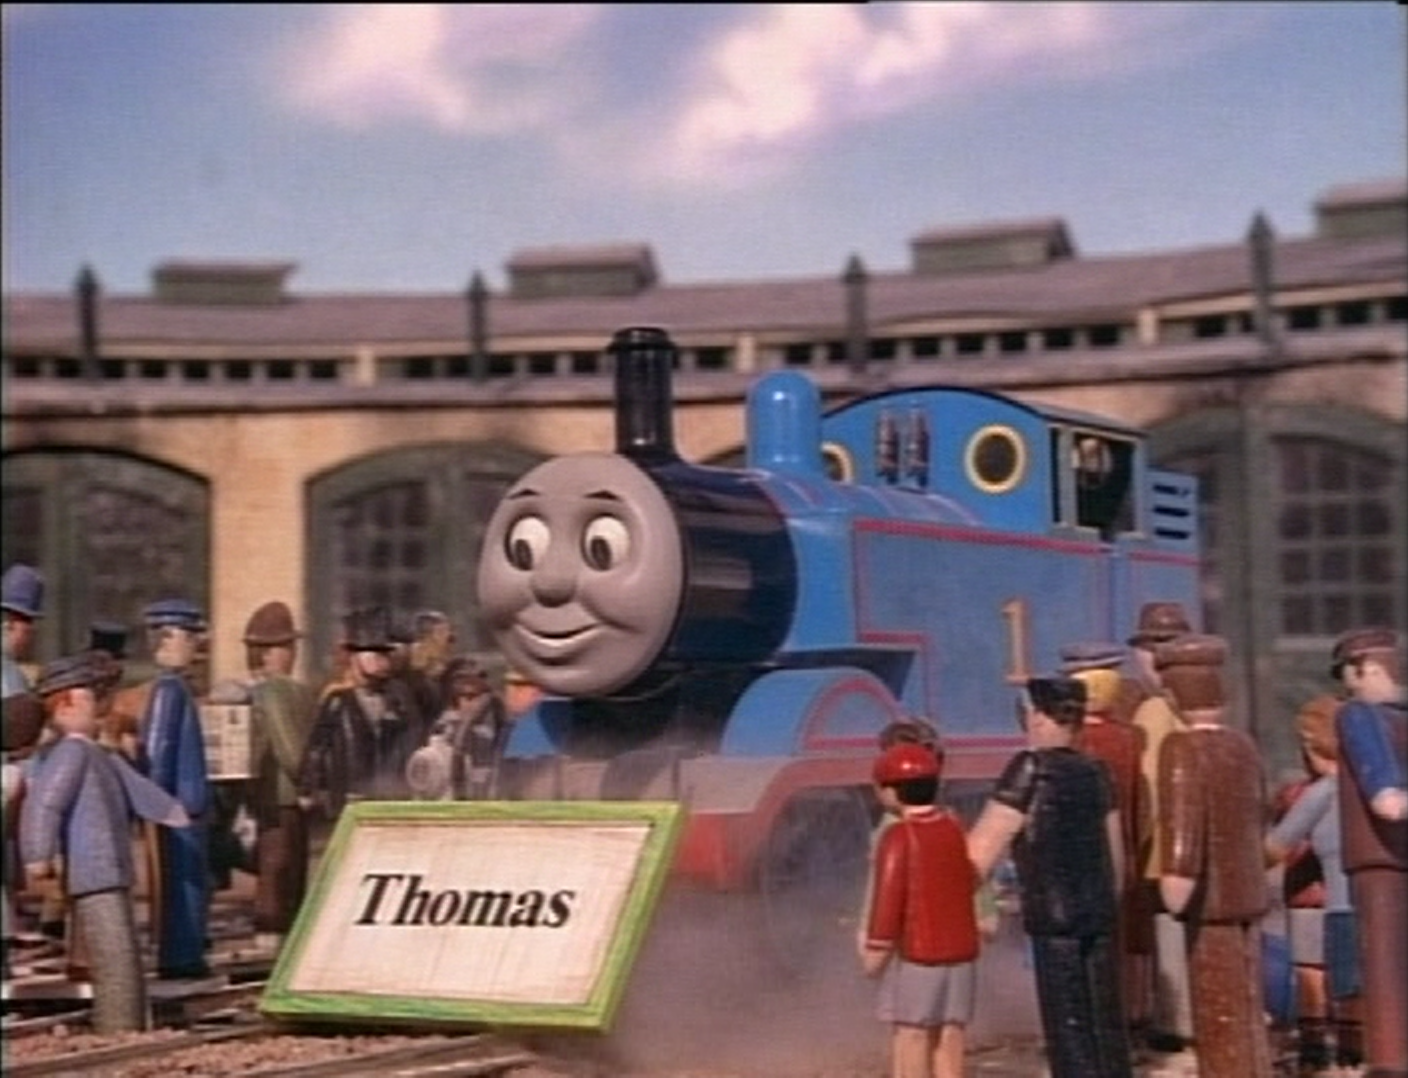 File:Thomaswithnameboard.png